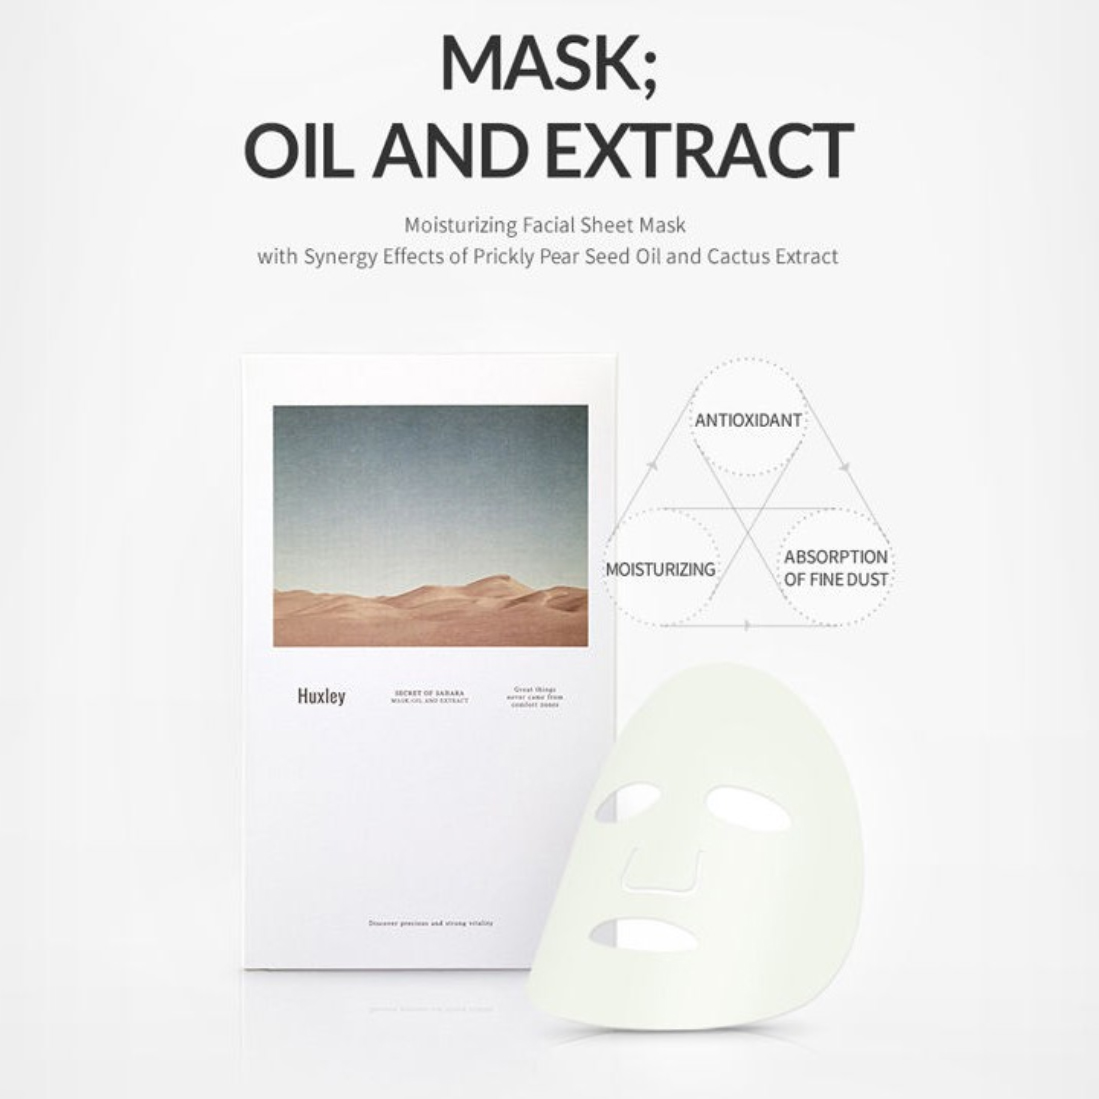 Oil @ Extract Mask.jpg